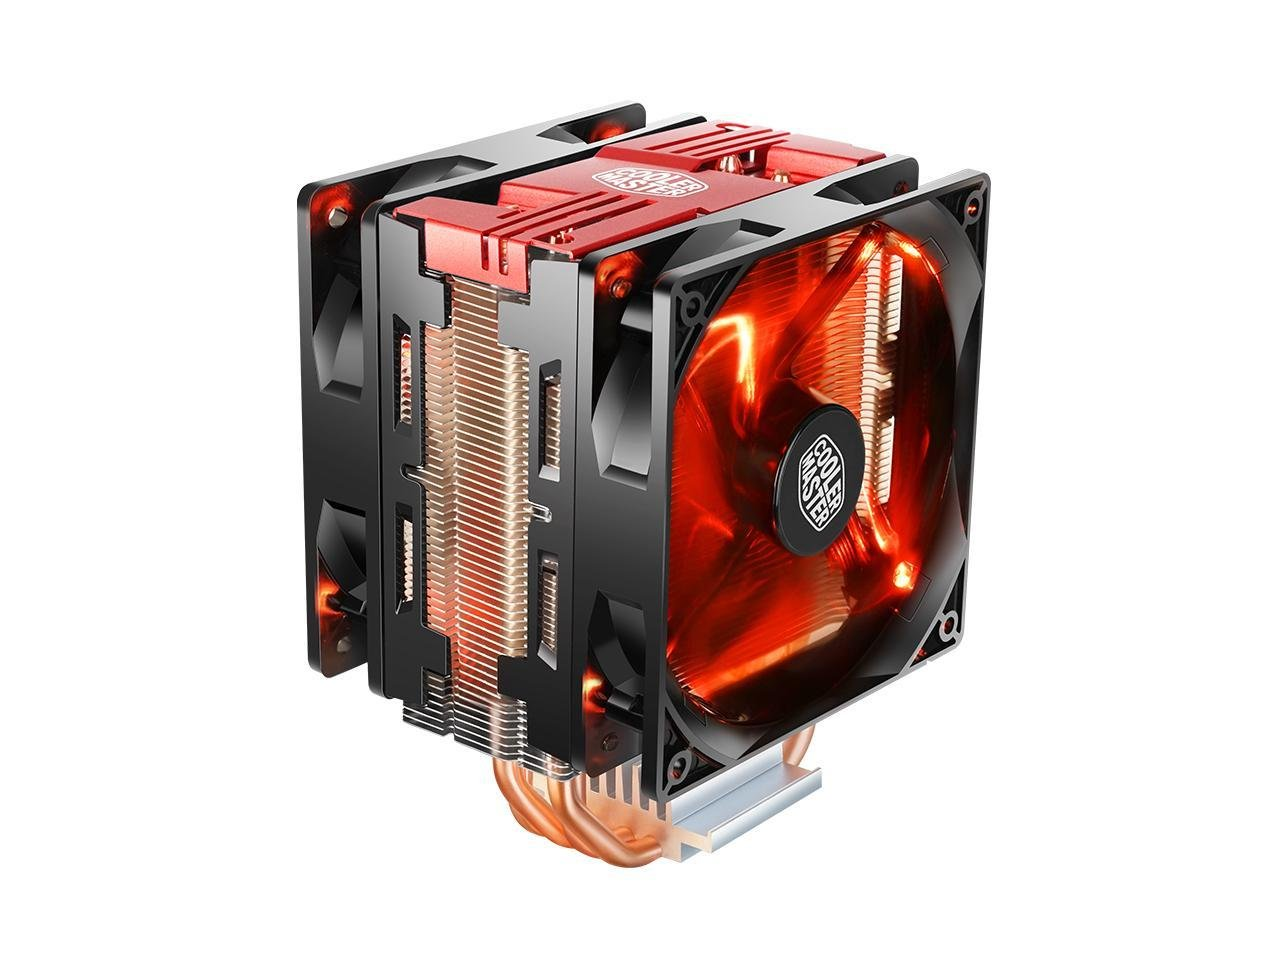 Cooler Master Blizzard T400 PRO (Red) - CPU Cooler with Dual (2X) XtraFlo 120''Fire Red LED PWM Fan, 4 Direct Contact Heatpipes, Red Top Cover, Intel/AMD Universal Mounting (AMD AM4 Compatible!) by Toptekits